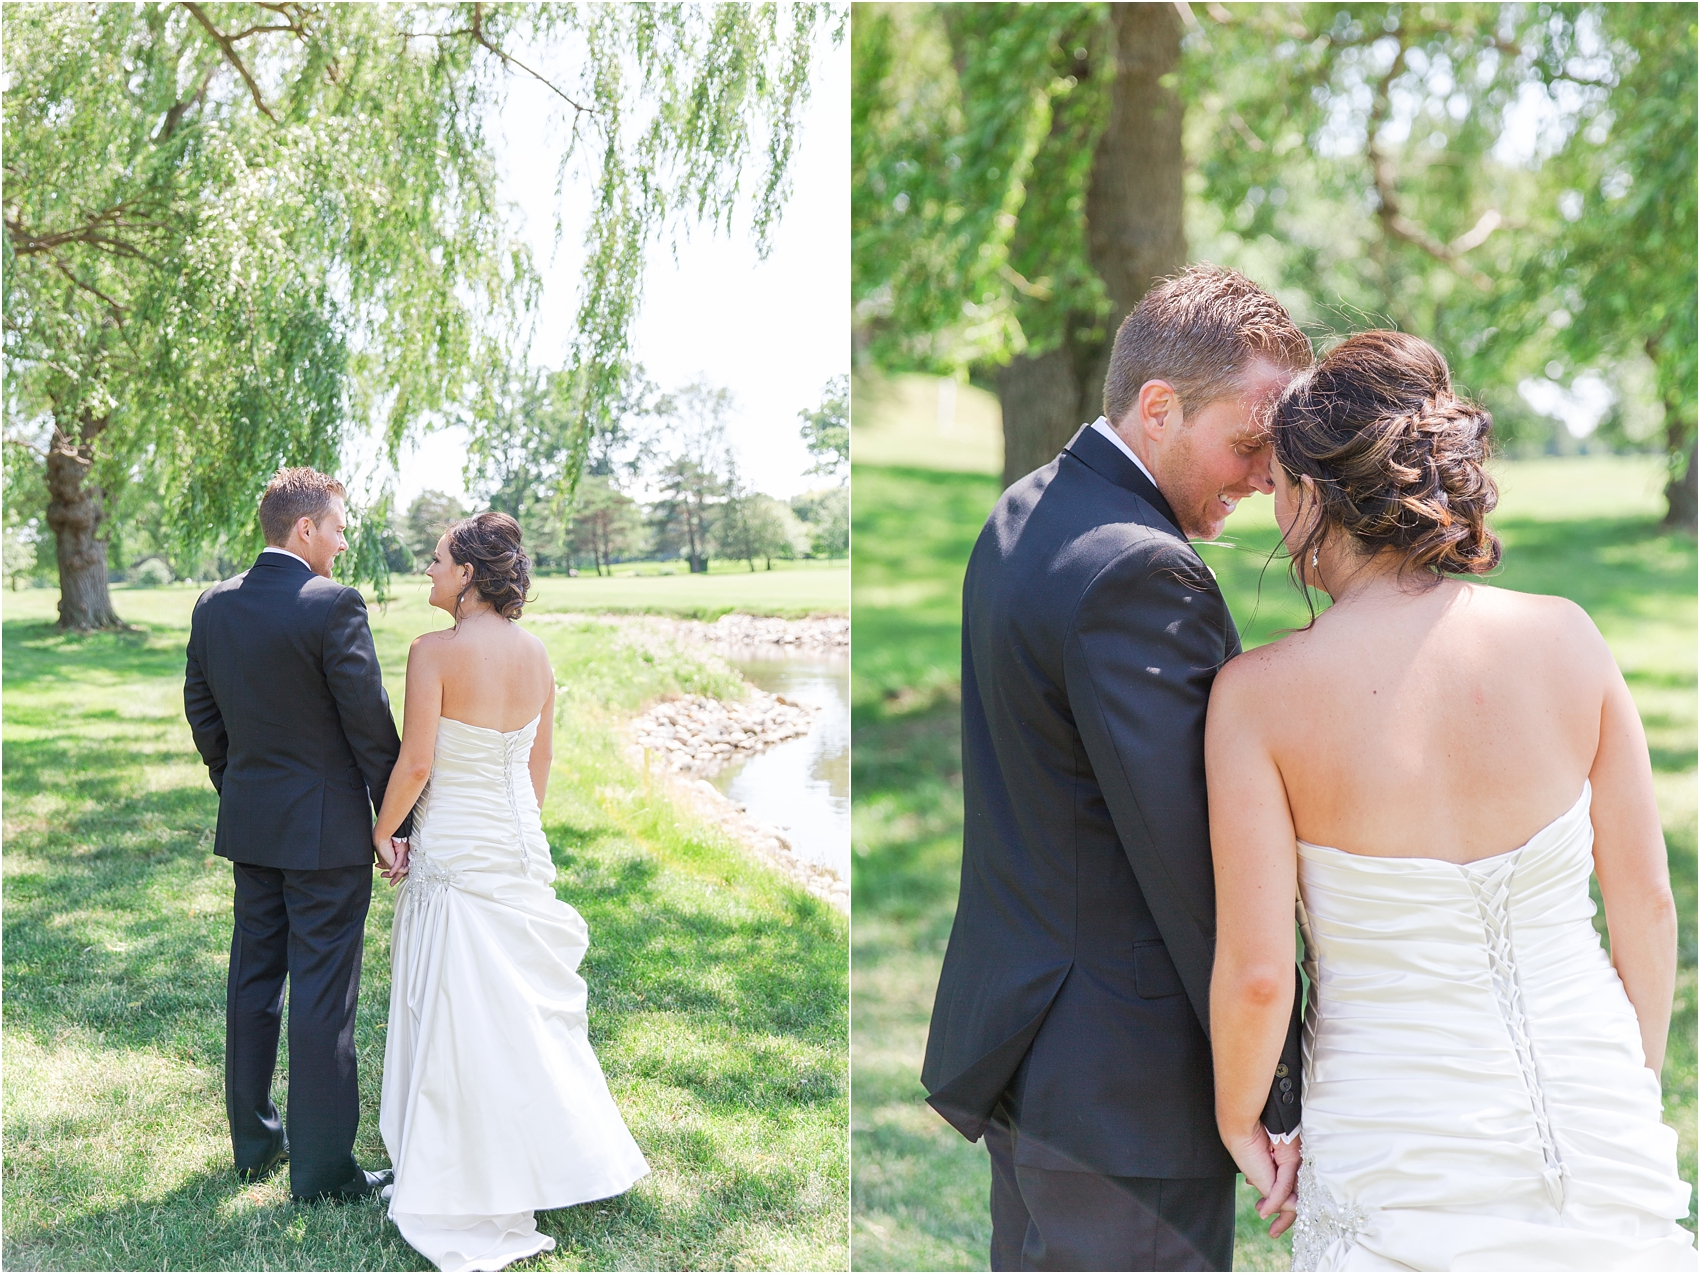 classic-wedding-photos-at-great-oaks-country-club-in-rochester-hills-mi-by-courtney-carolyn-photography_0045.jpg